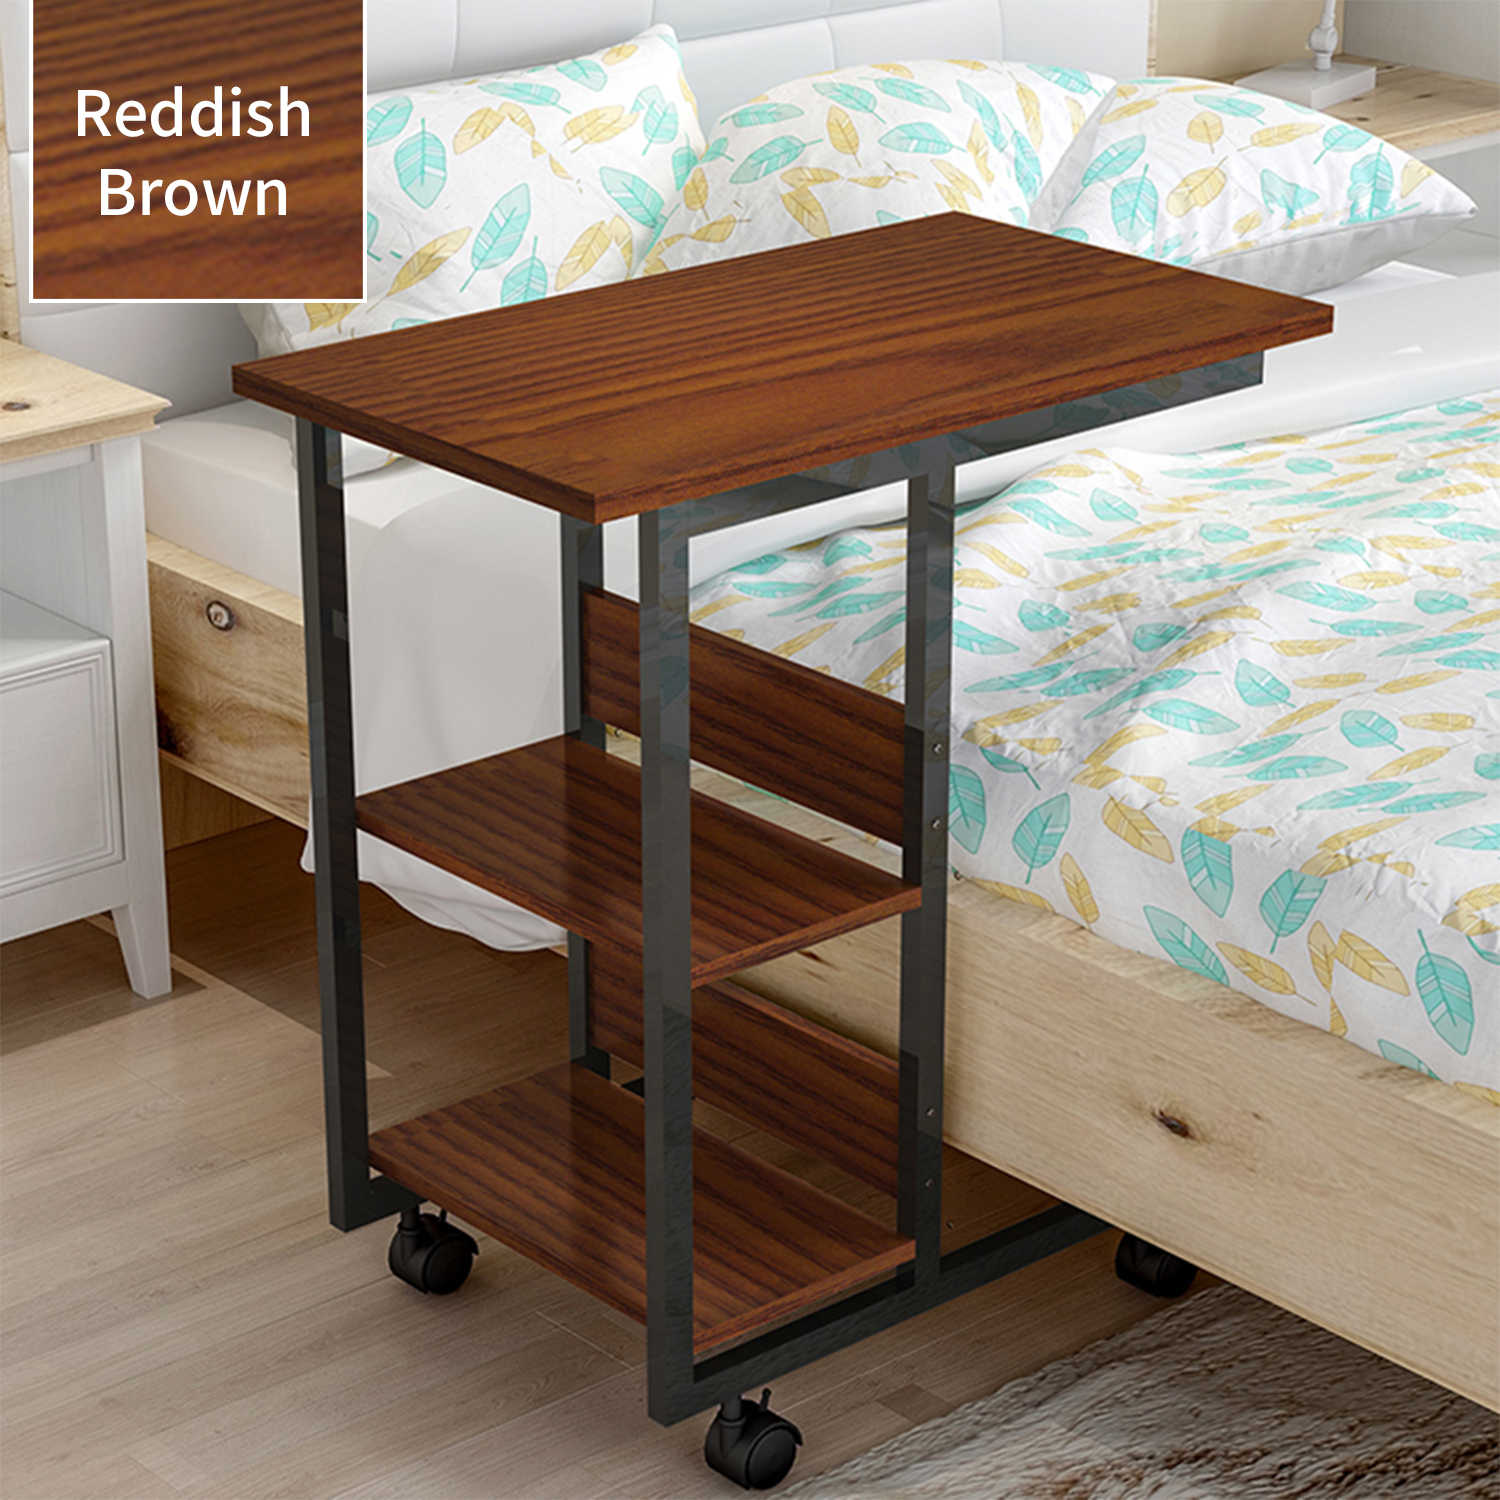 Picture of: 3 Tier Storage Rack Simple Moveable Coffee Side Table Tray For Sofa Bed Couch C Shaped Table Desk Rolling Casters With Brakes End Tables Aliexpress